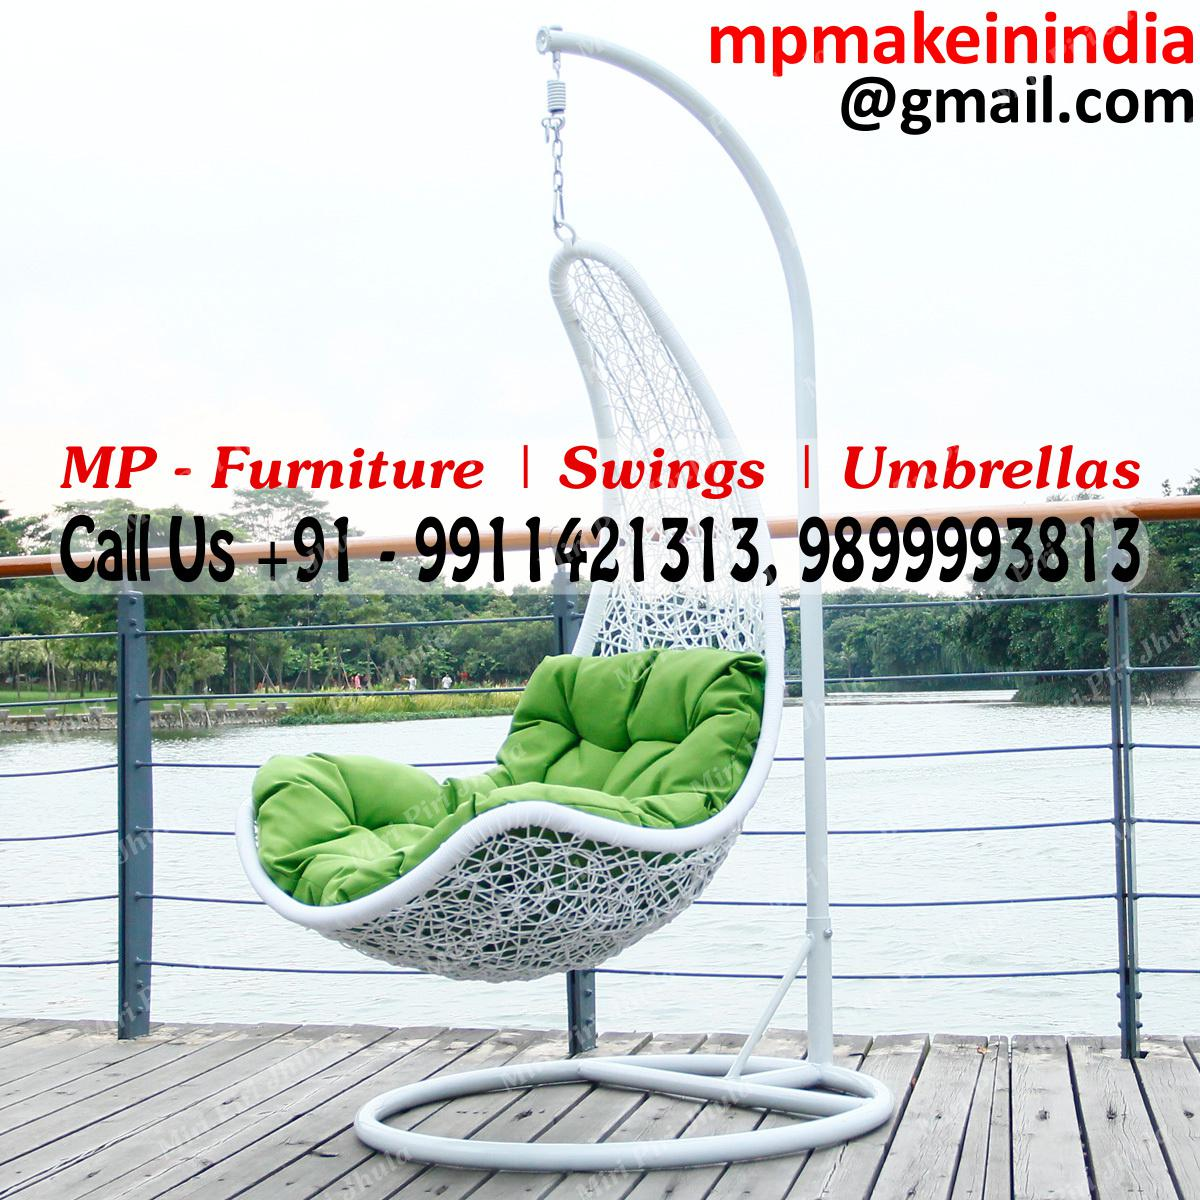 Sofa Olx Amravati Swings Jhula Images Photos Models